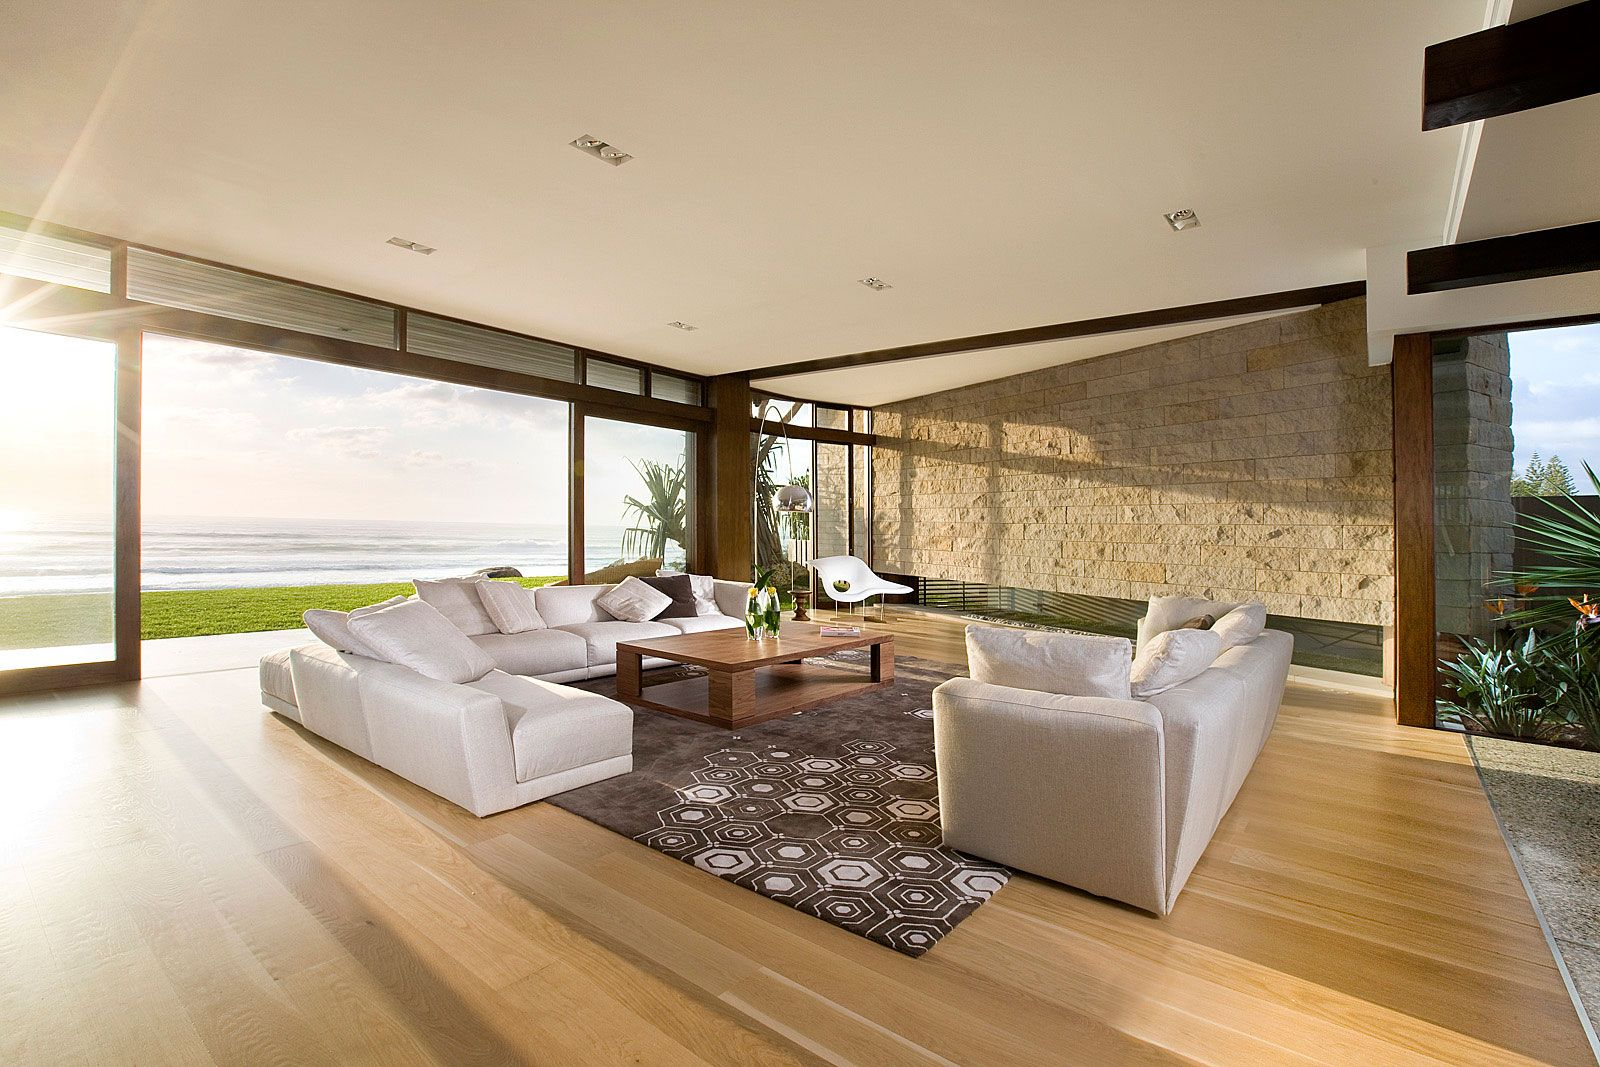 Here We Have 25 Open Living Room Design Ideas For Your Inspiration Enjoy And Don